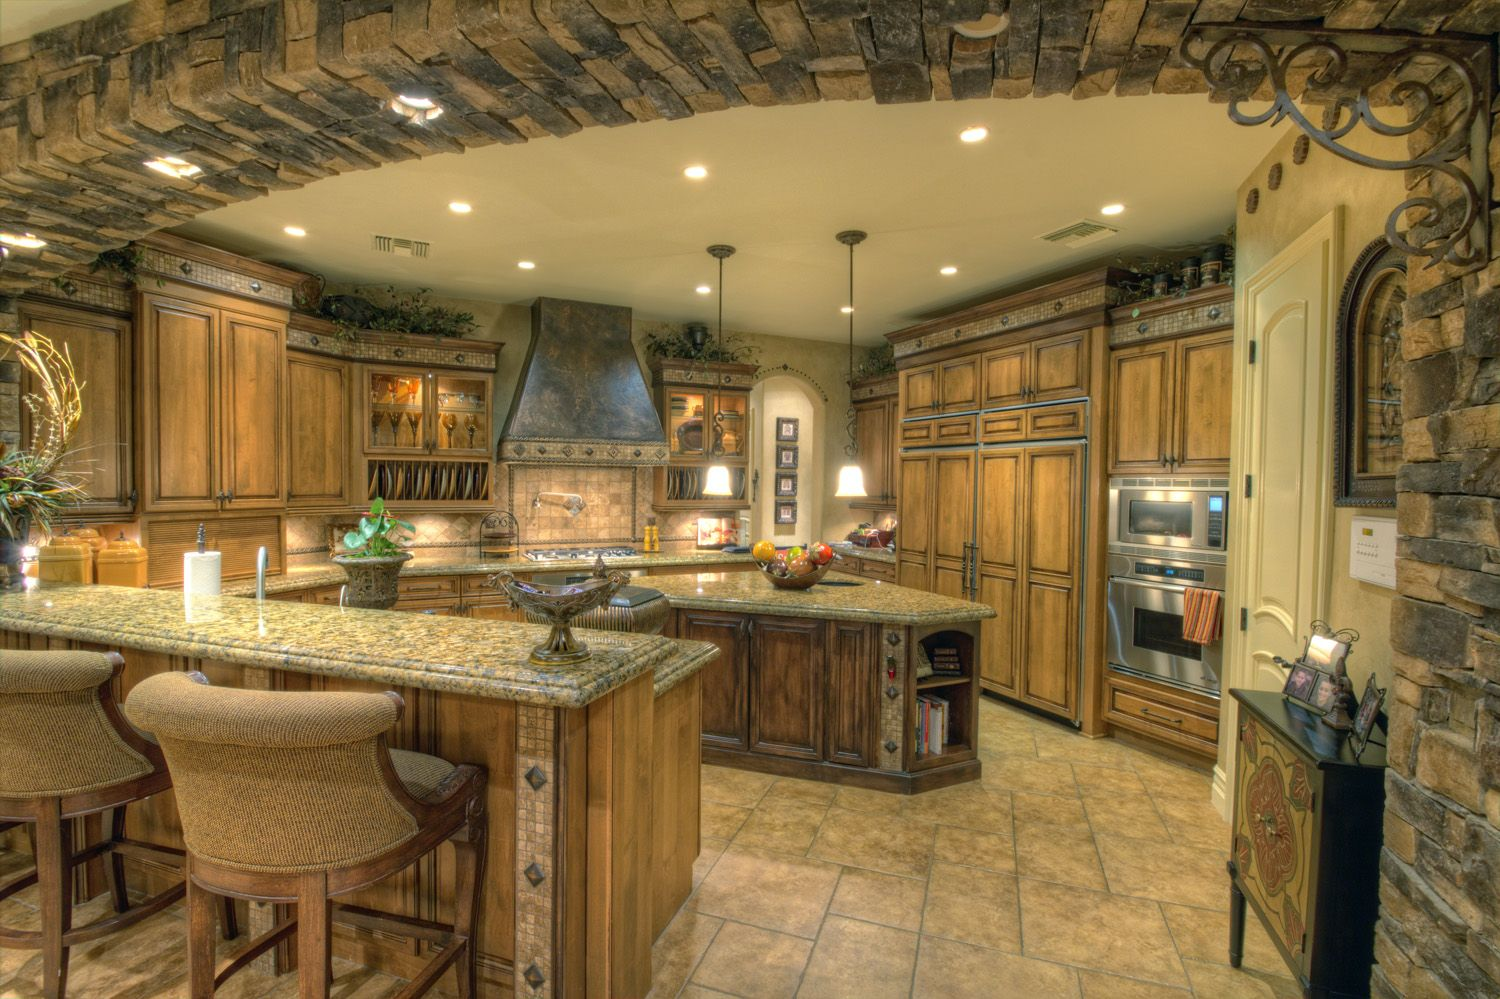 Luxury Kitchens Luxury Estate Designer